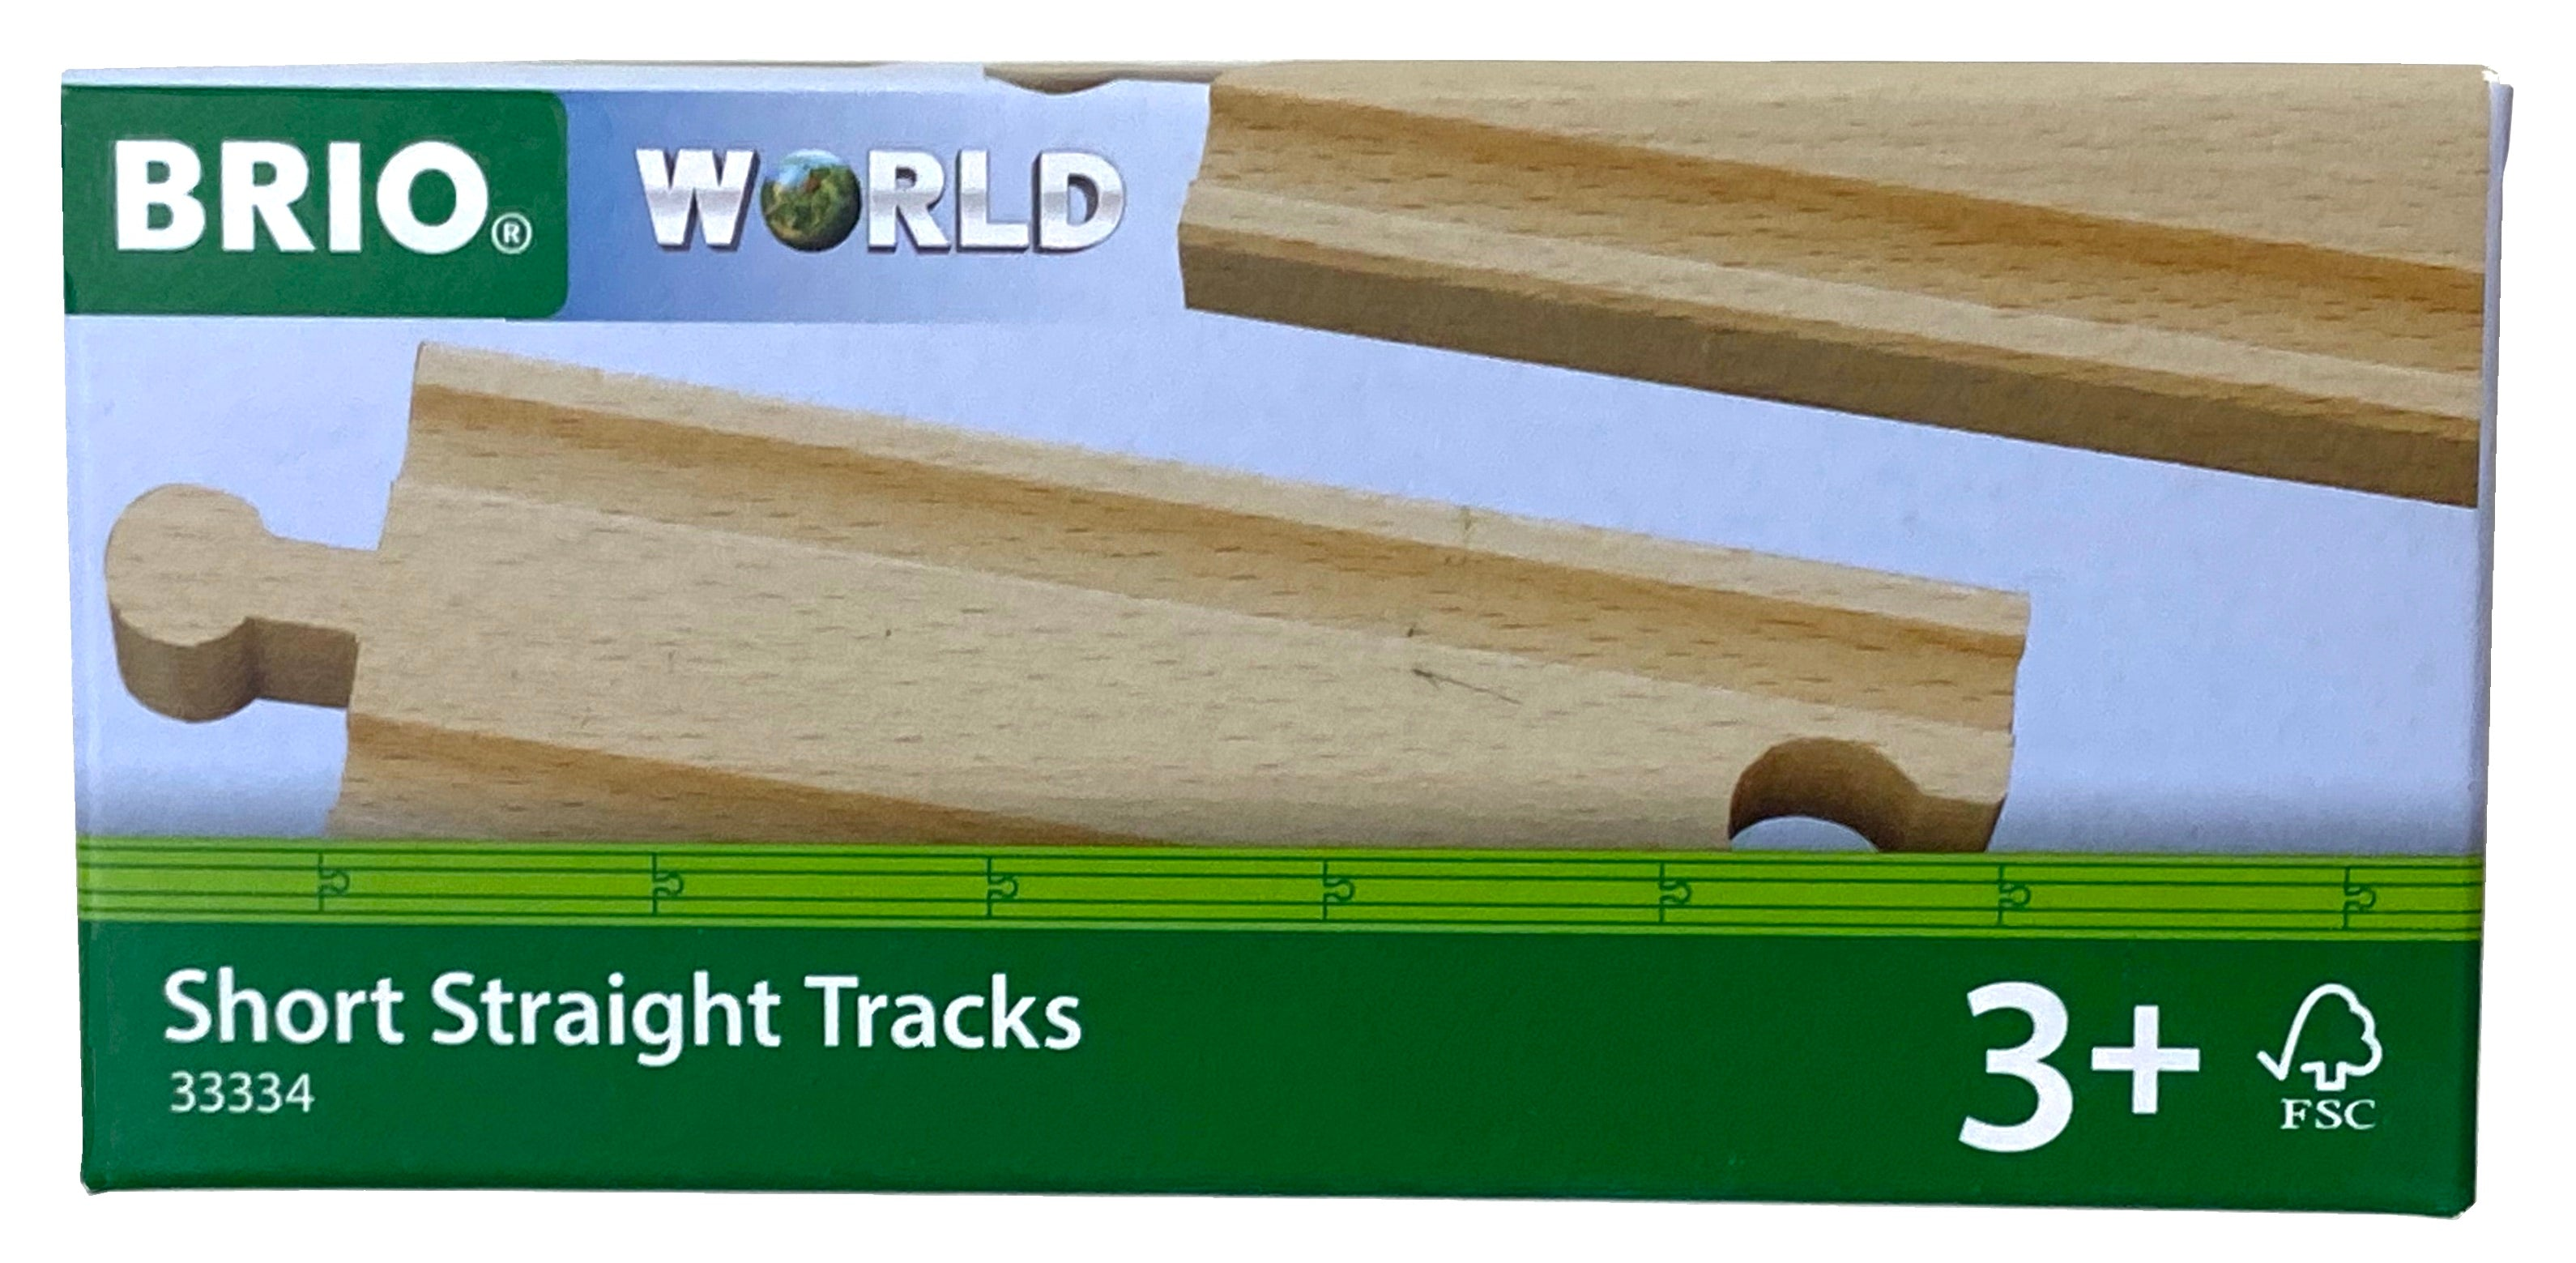 Brio Short Straight Tracks